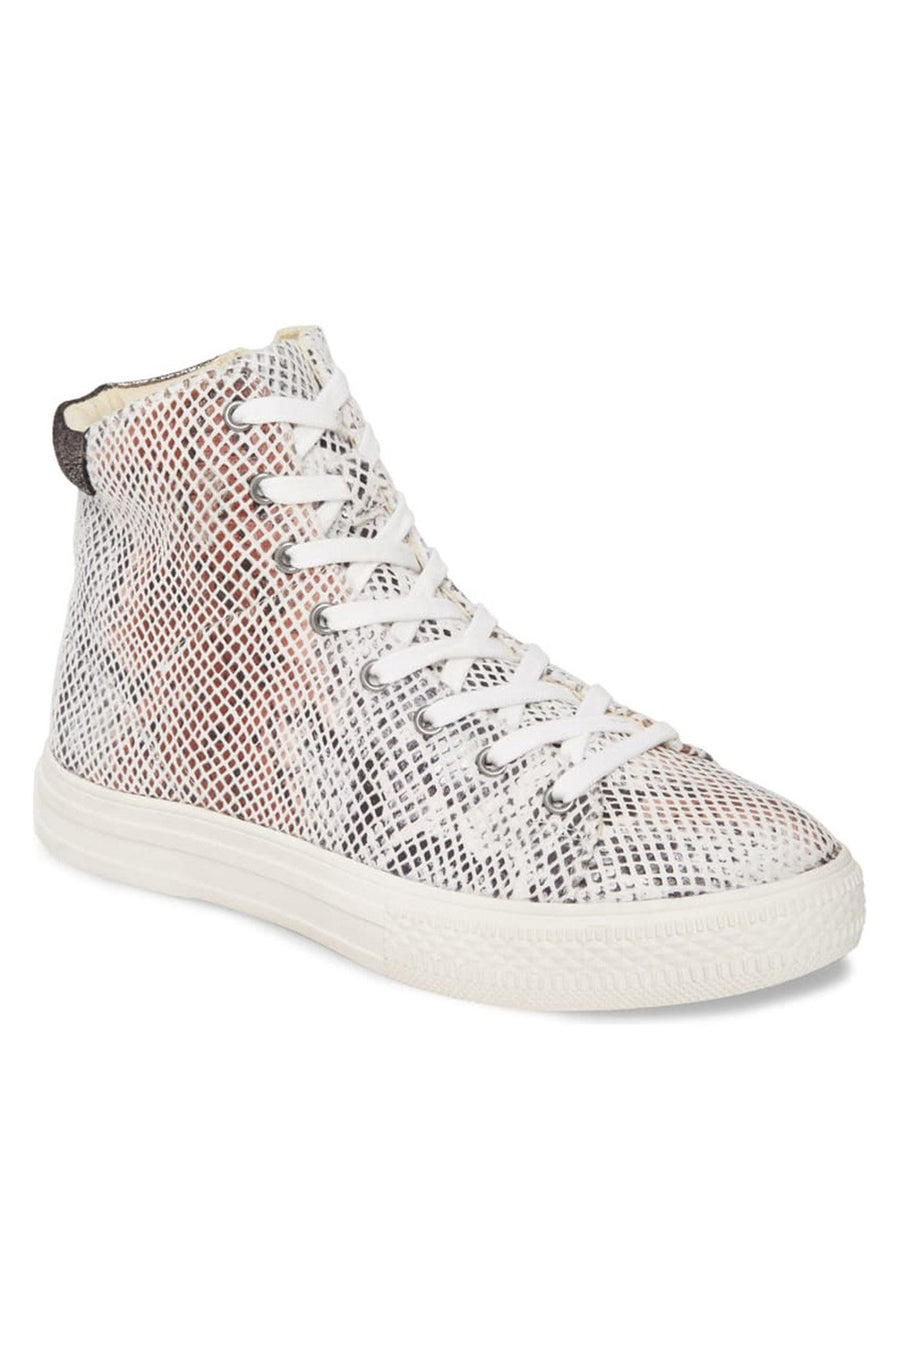 Eagle Micro Snake Print White High Top Sneaker